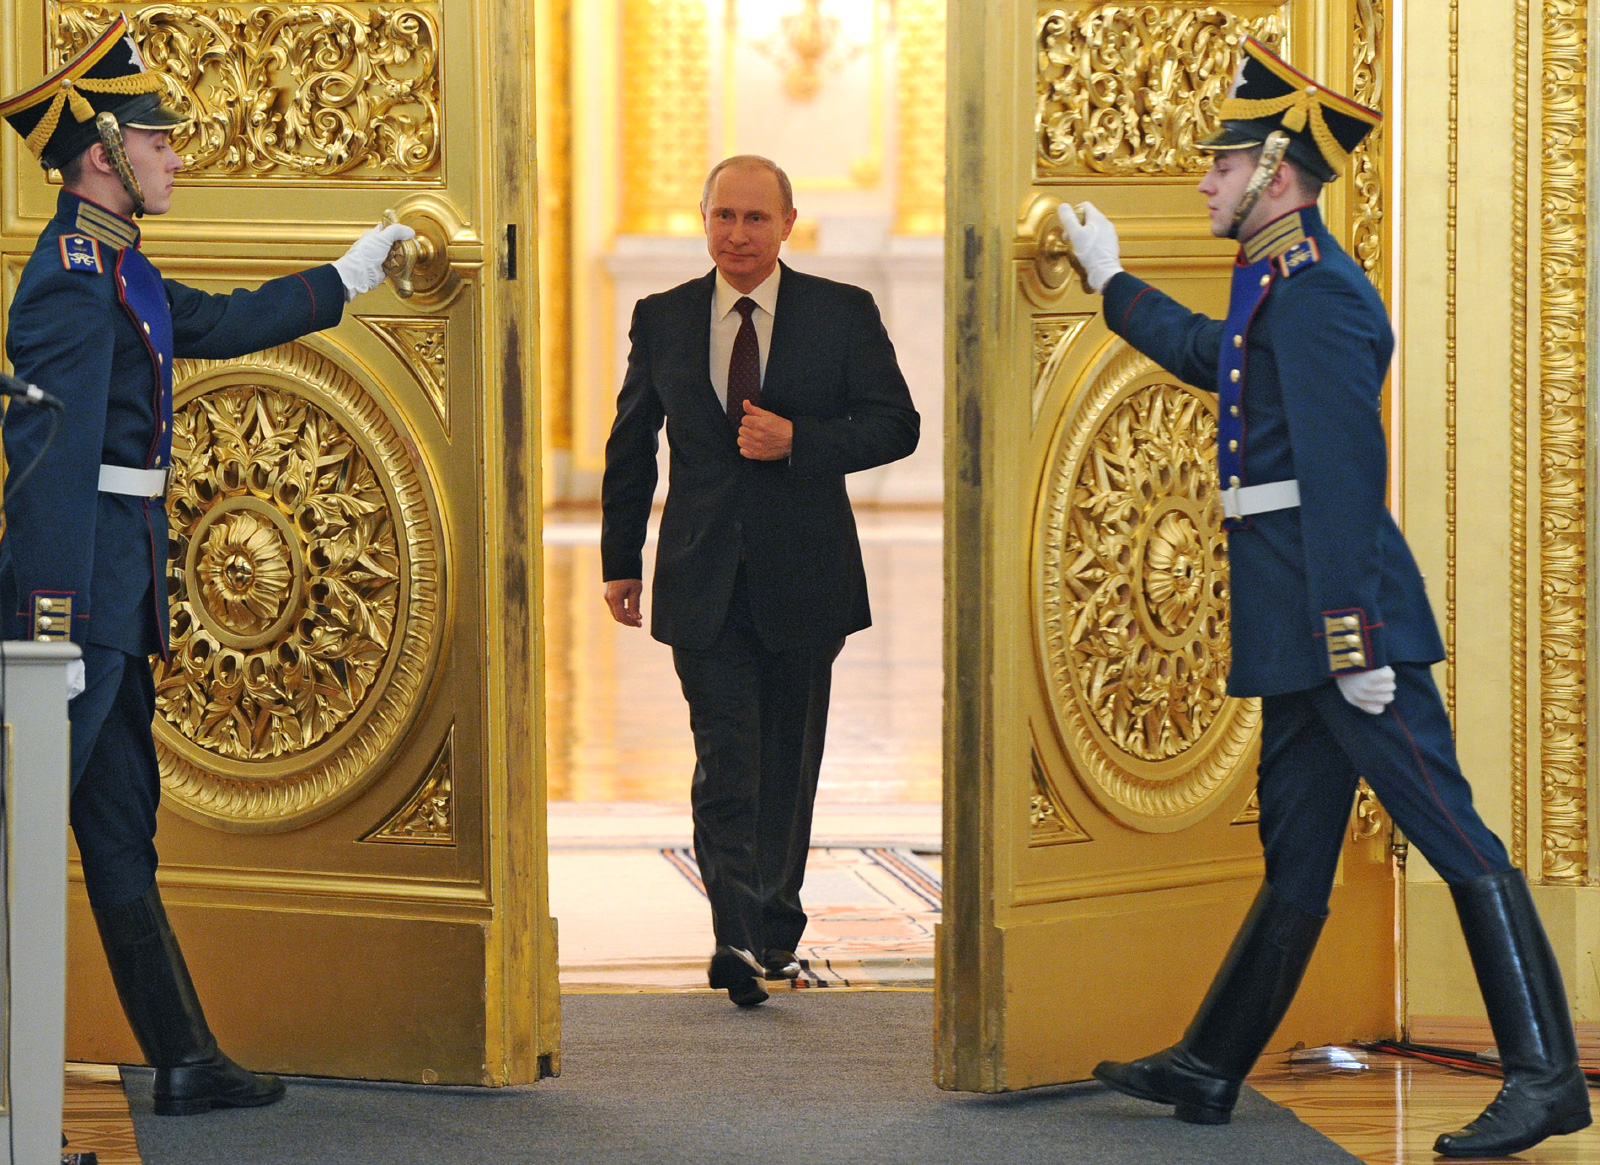 Russian President Vladimir Putin enters the St. George Hall at the Grand Kremlin Palace at the Kremlin in Moscow, on December 12, 2013, to deliver an annual state of the nation address. (Mikhail Klimentyev/AFP/Getty Images)